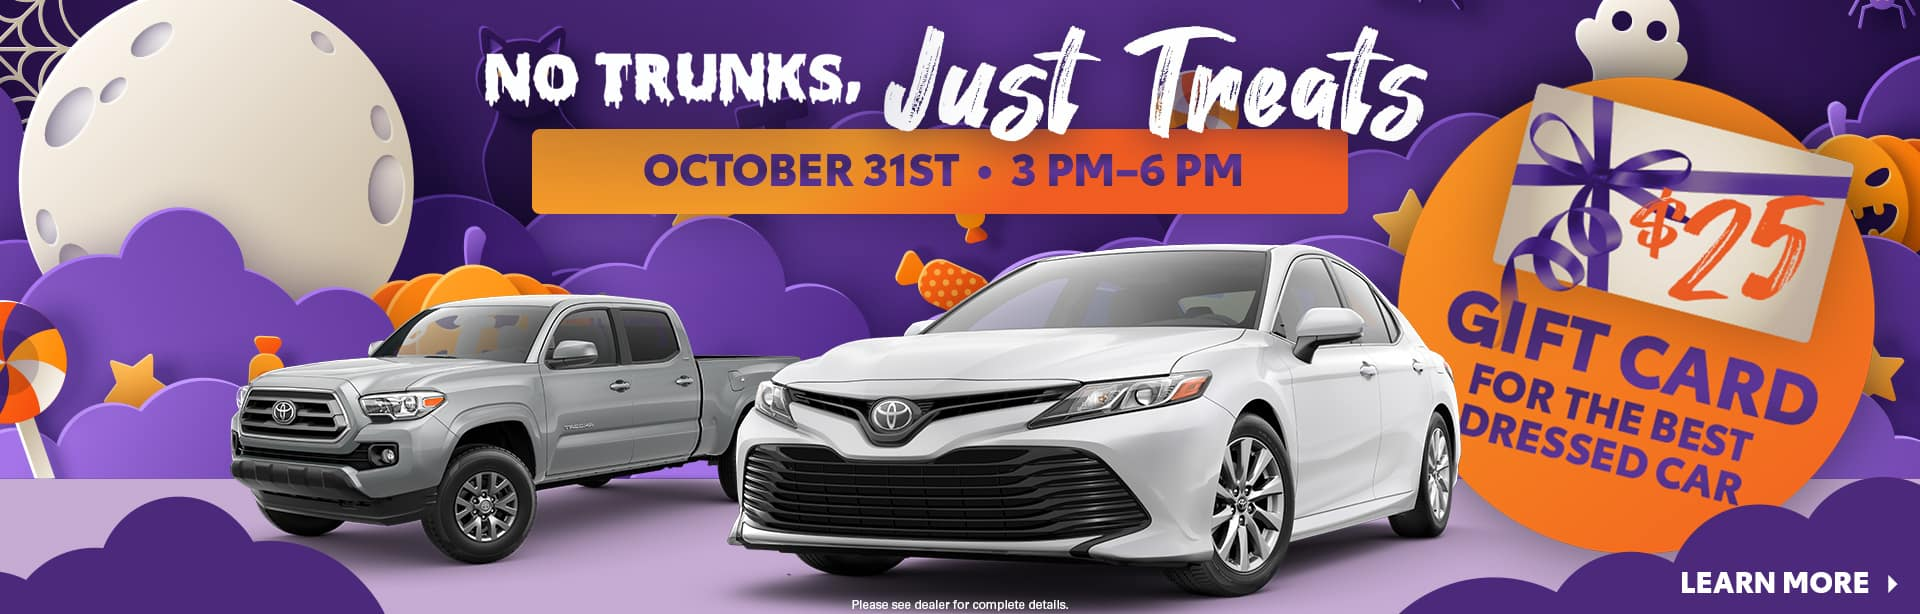 No Trunks, Just Treats   October 31st 3PM - 6PM   $25 Gift Card For The Best Dressed Car